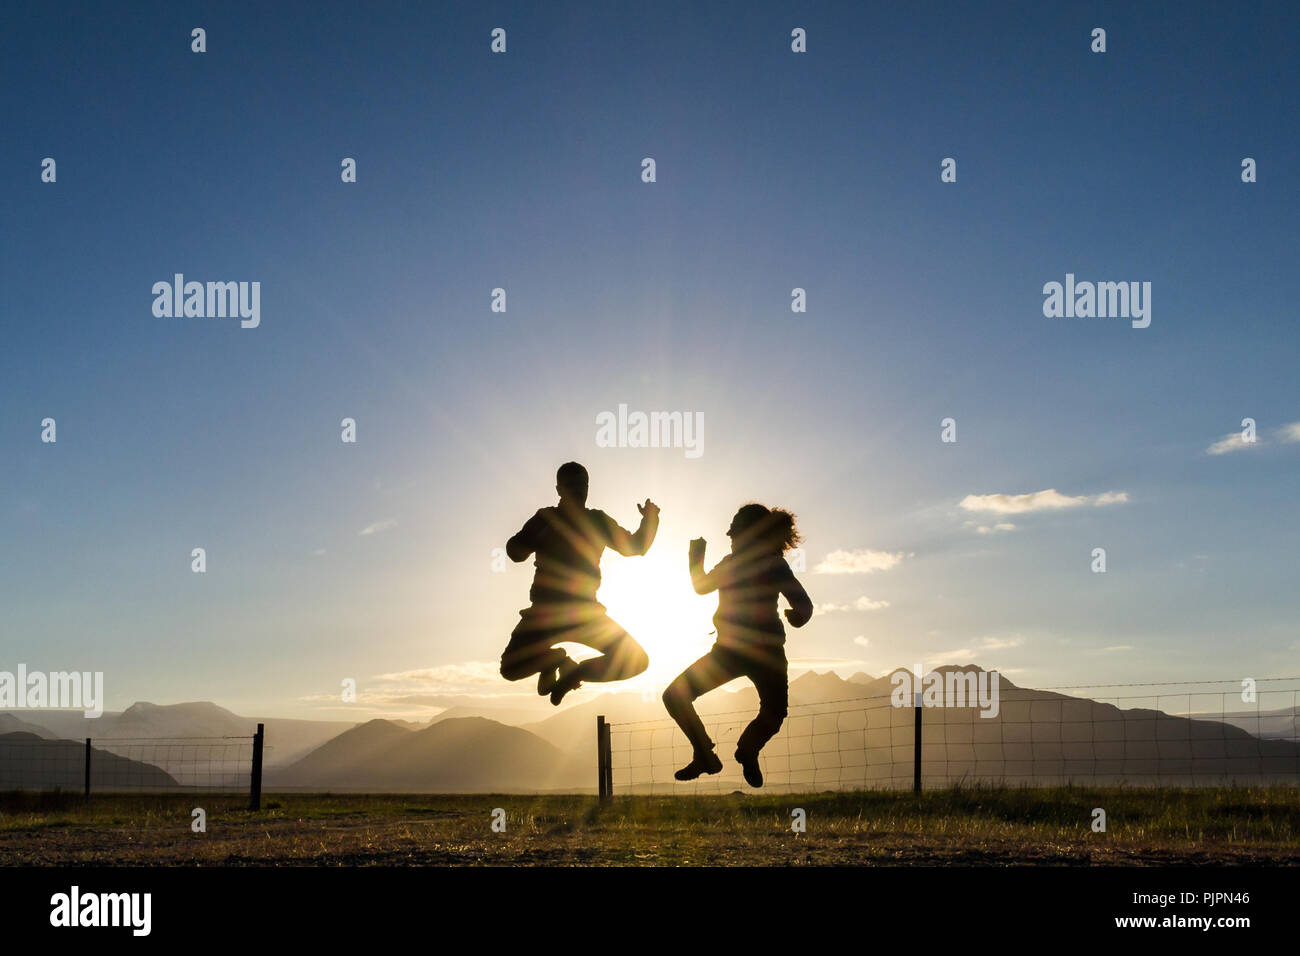 Two people jumping for fun near Hofn, Iceland, at sunset. Backlit silhouettes with some clouds and blue sky. Sensation of freedom and carelessness. - Stock Image